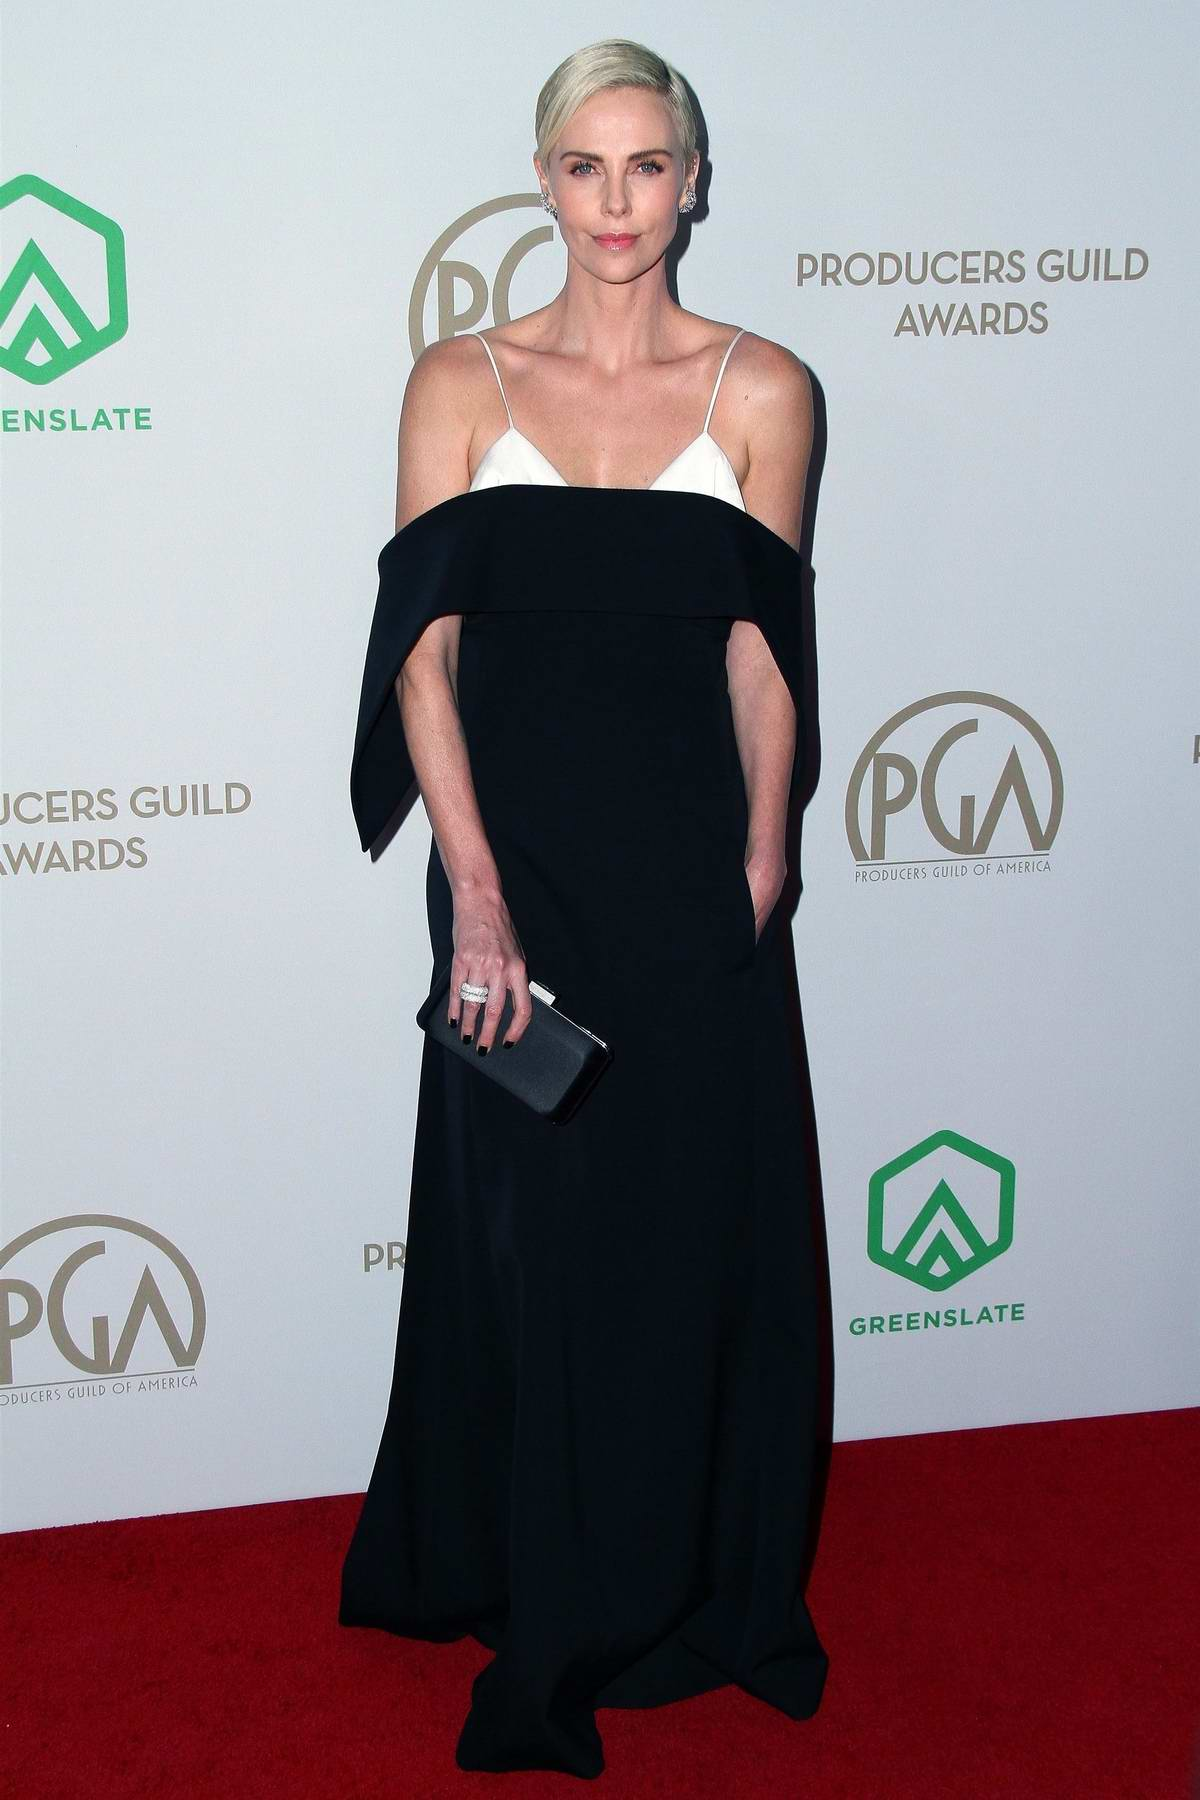 Charlize Theron attends the 31st Annual Producers Guild Awards in Los Angeles